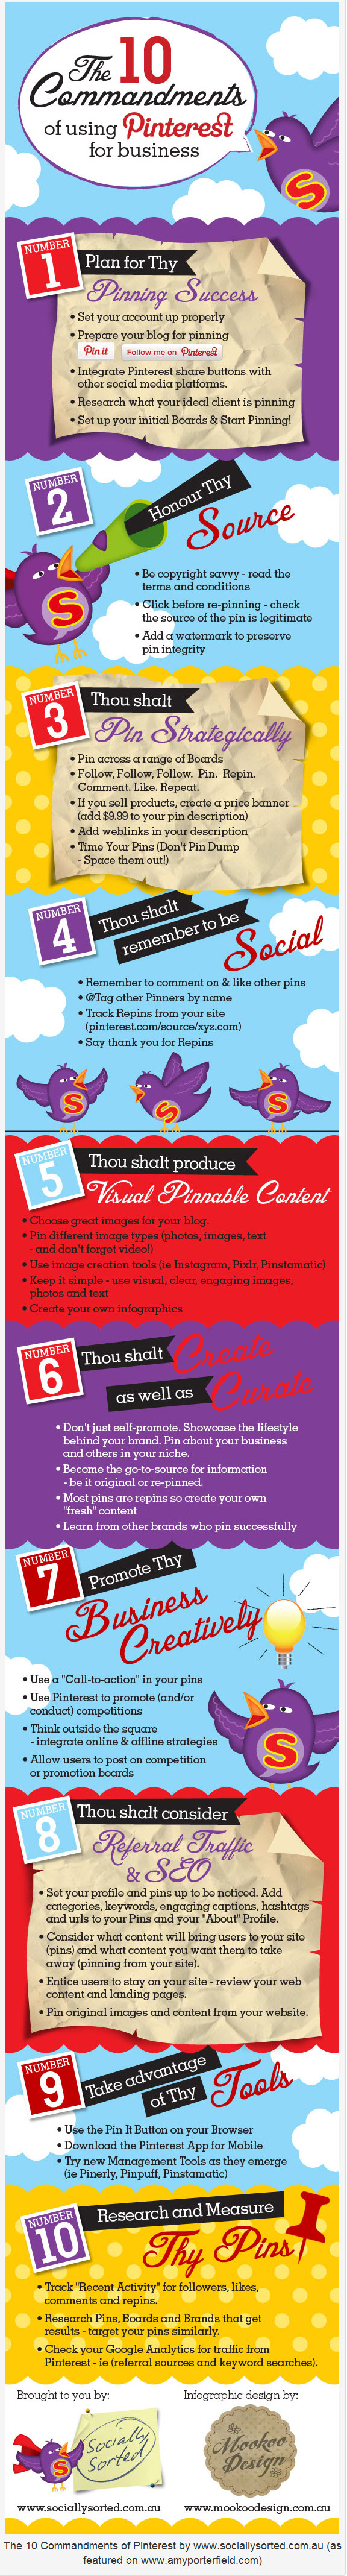 10 Top Tips for Marketing your Business on Pinterest infographic